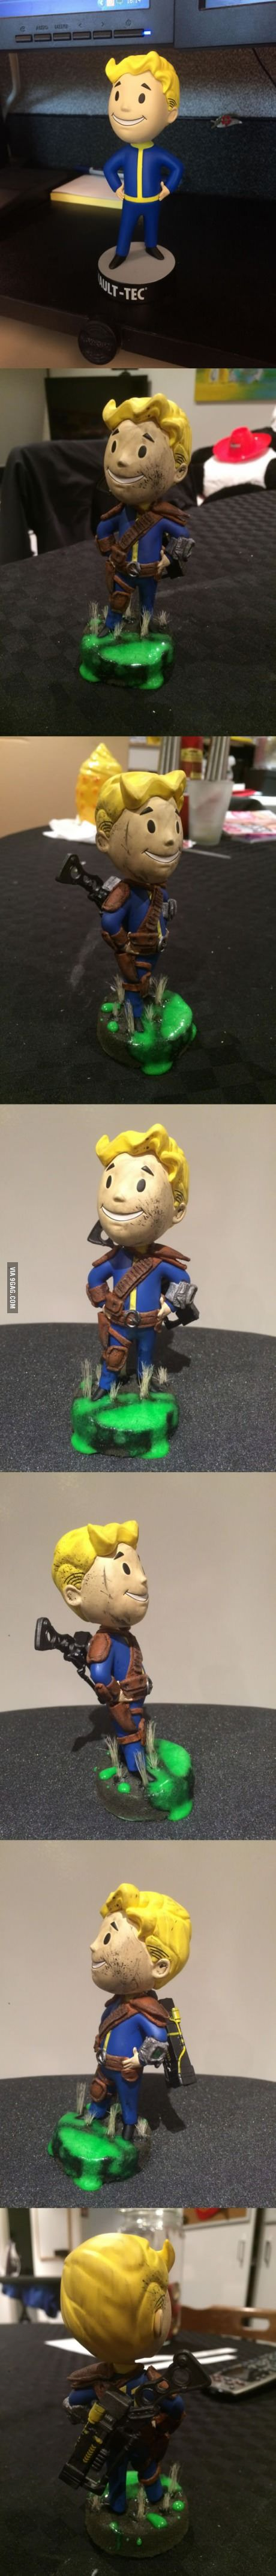 This guy upgraded his Fallout Bobble-Head with some extras to make him look more...'travelled'.